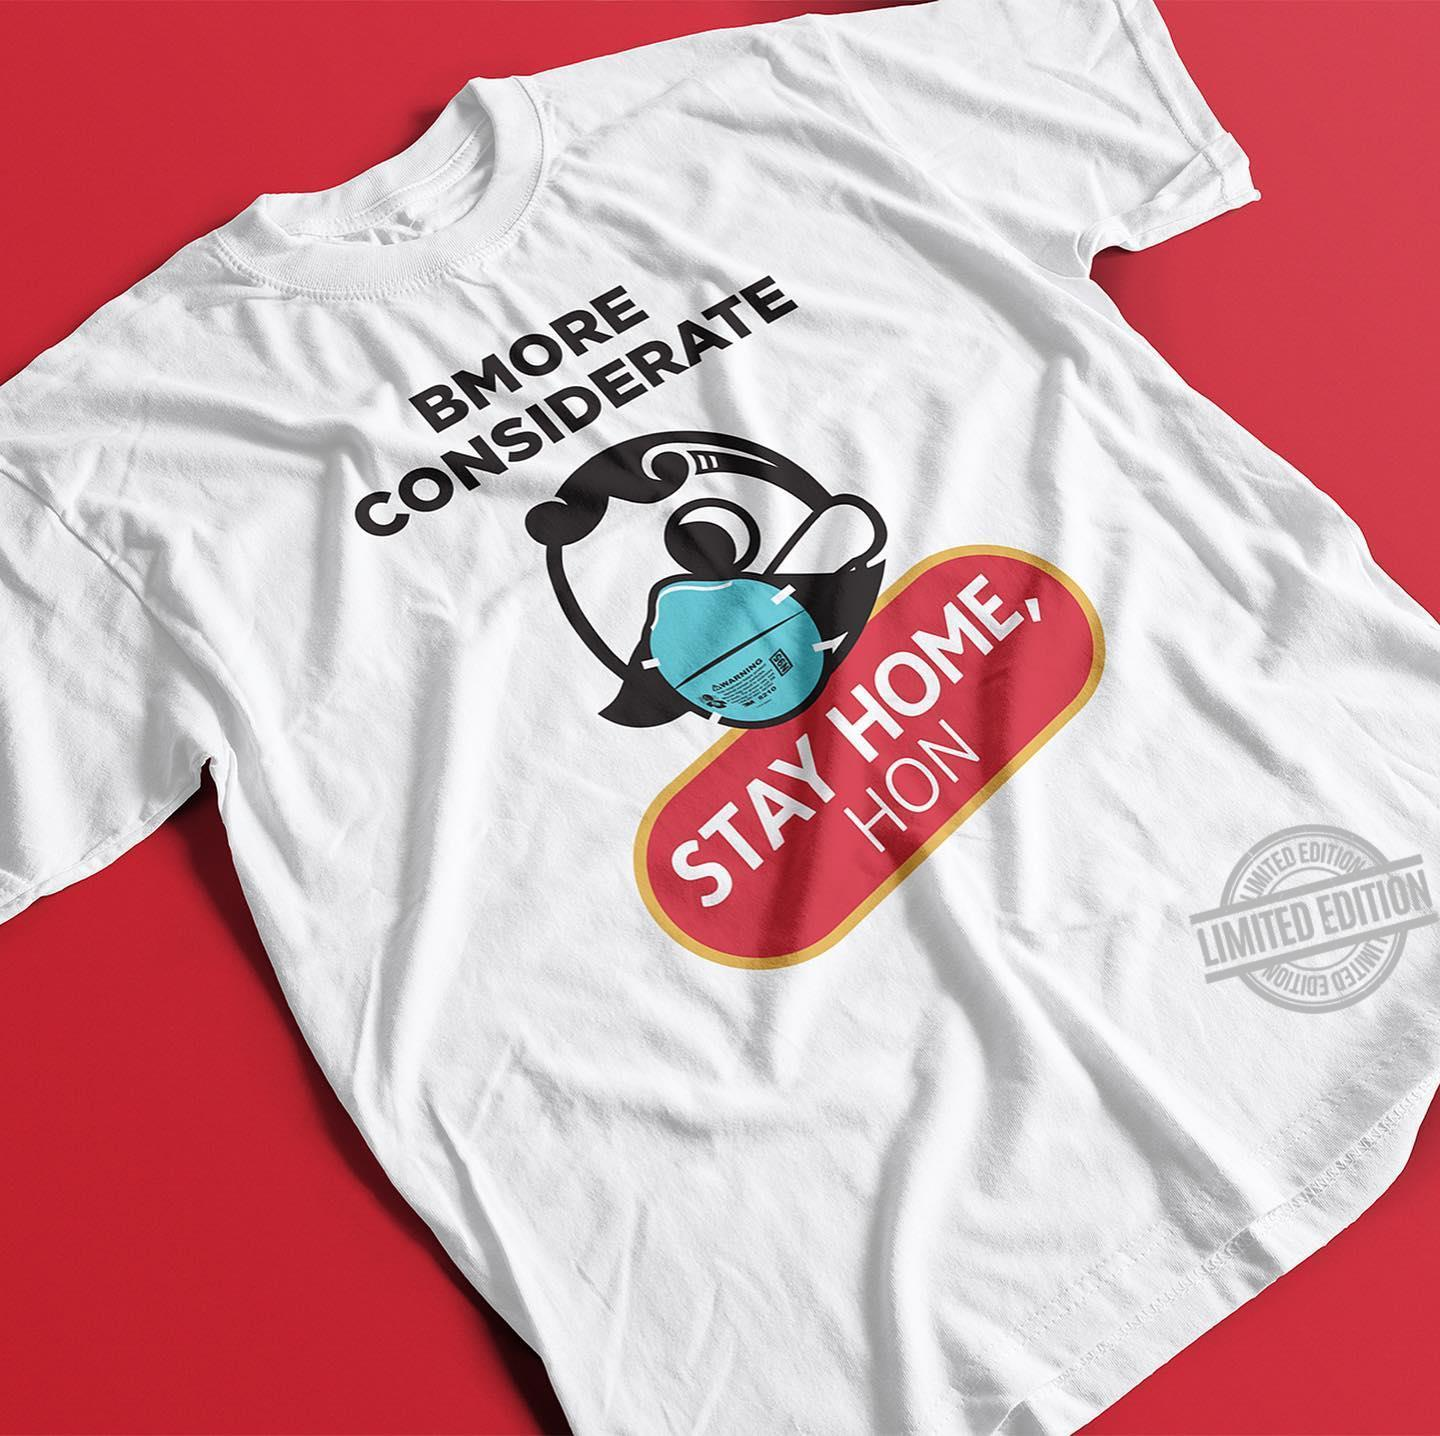 Bmore Considerate Stay Home Hon Shirt